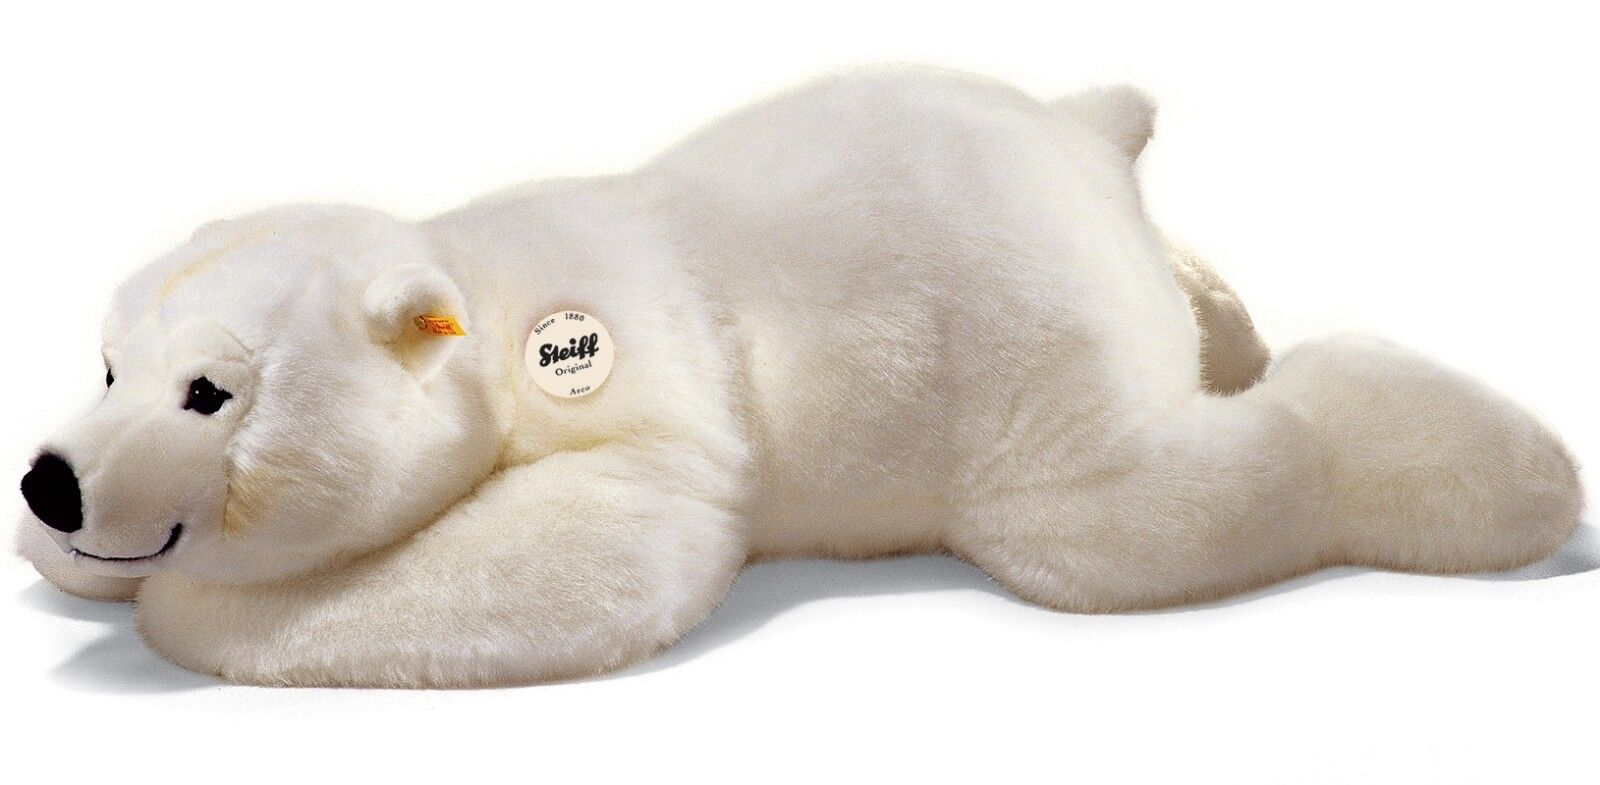 Steiff Arco Polar Bear baby classic washable soft toy - 45cm - EAN 115110